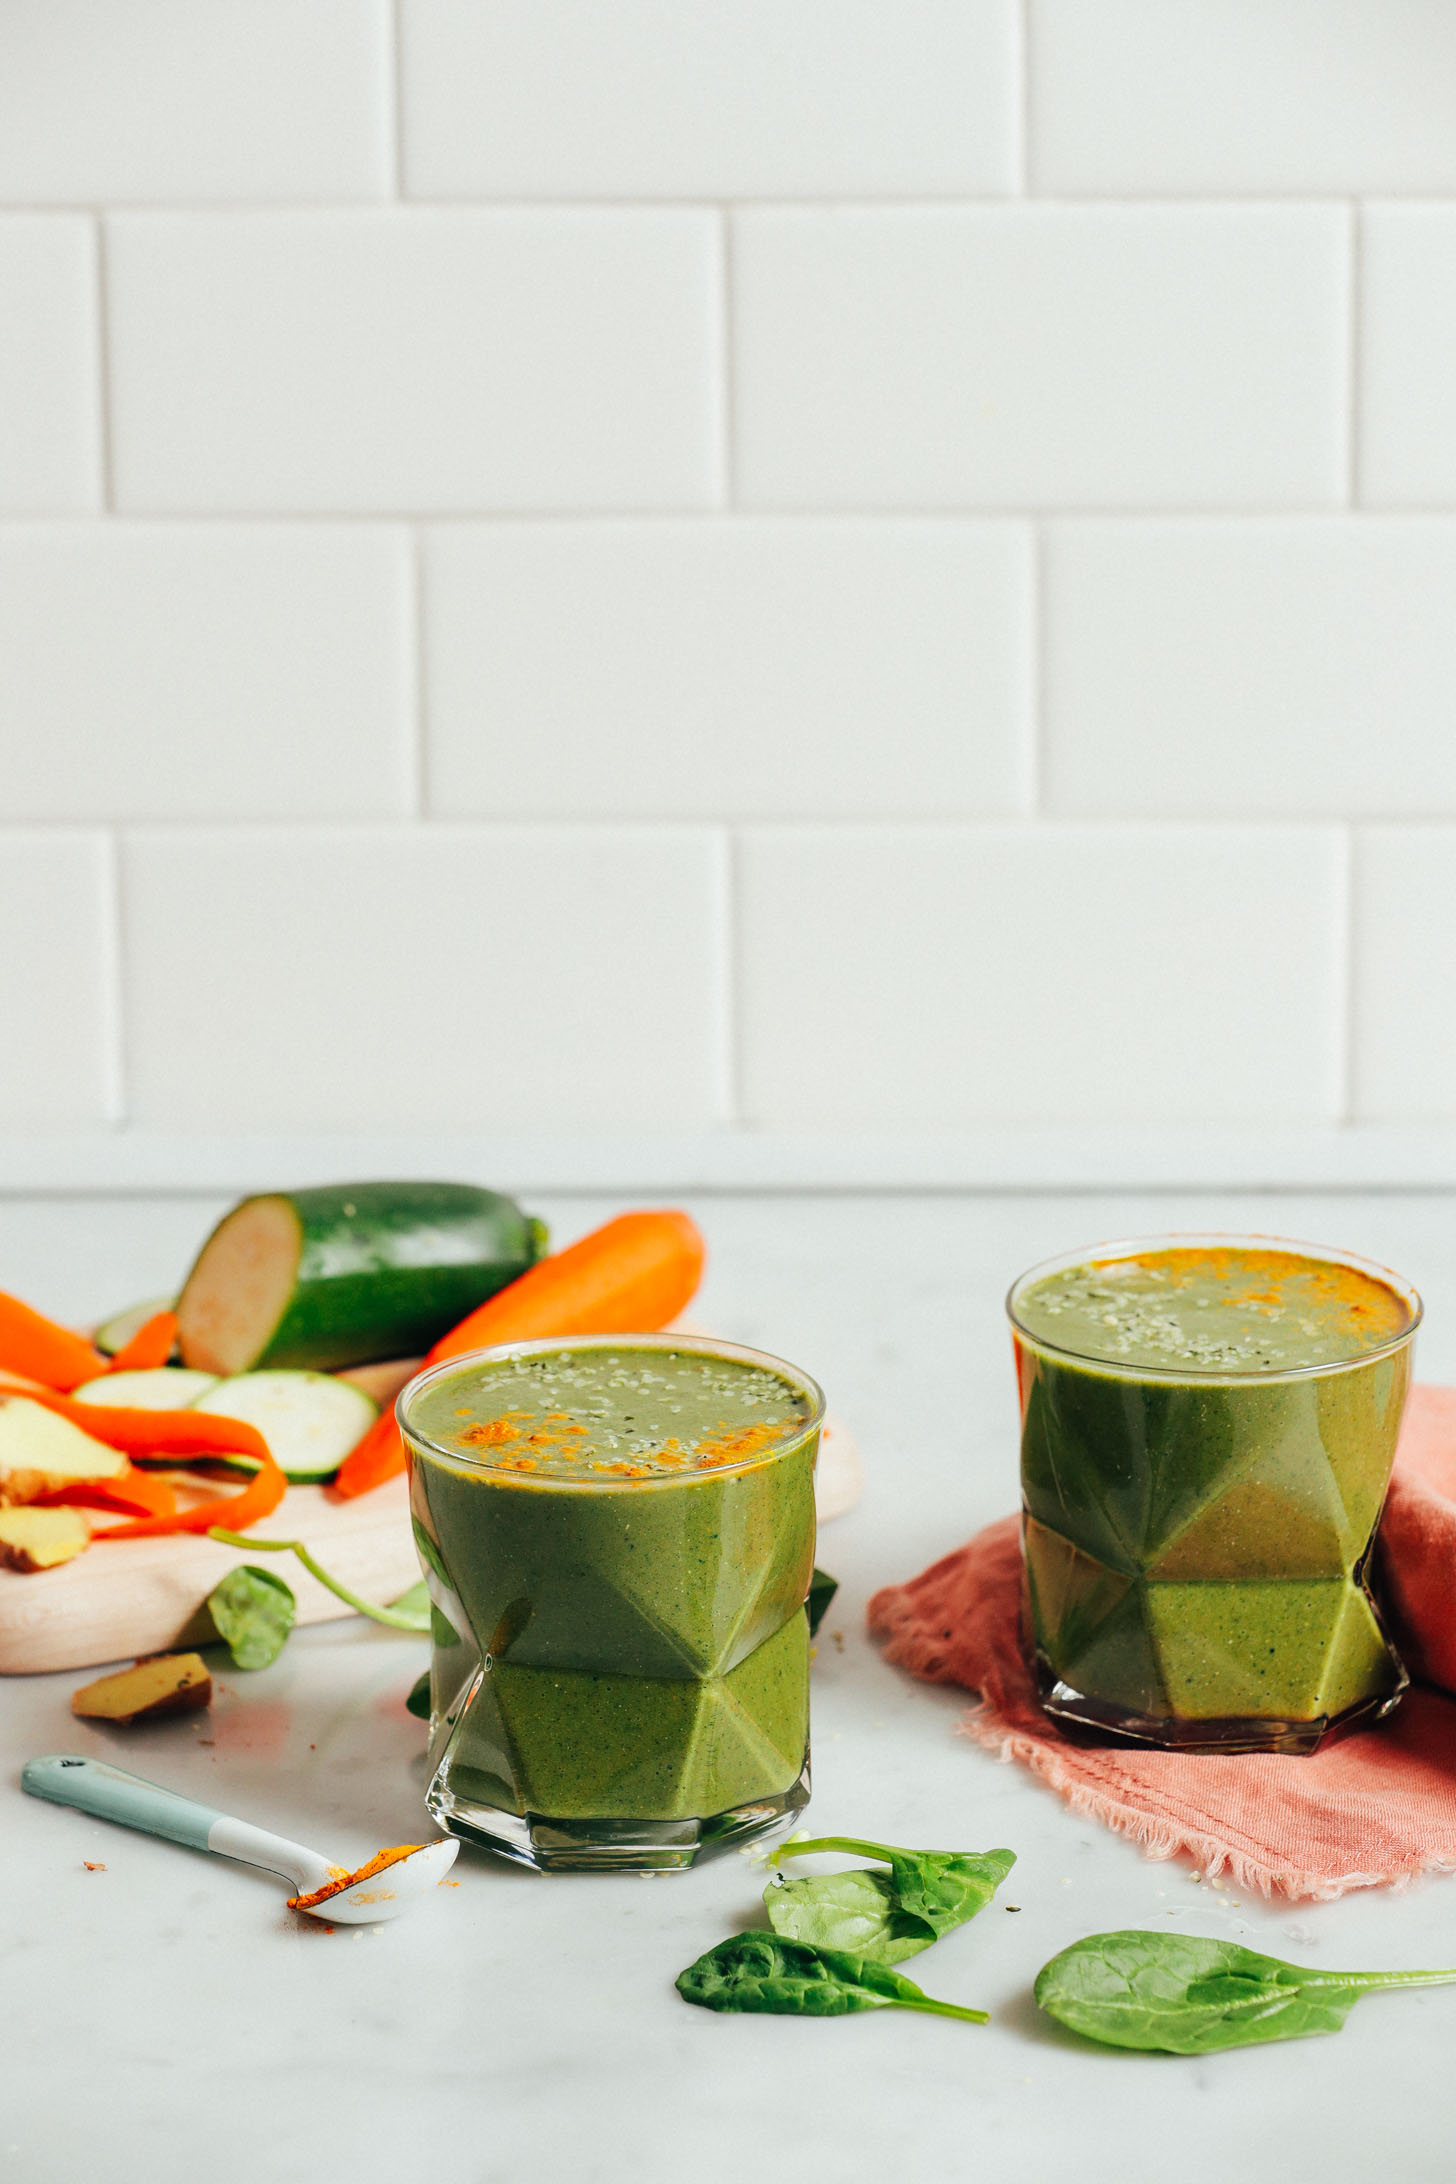 Straight on image of two glasses of warming winter green smoothie with carrot, zucchini, spinach, and turmeric garnish